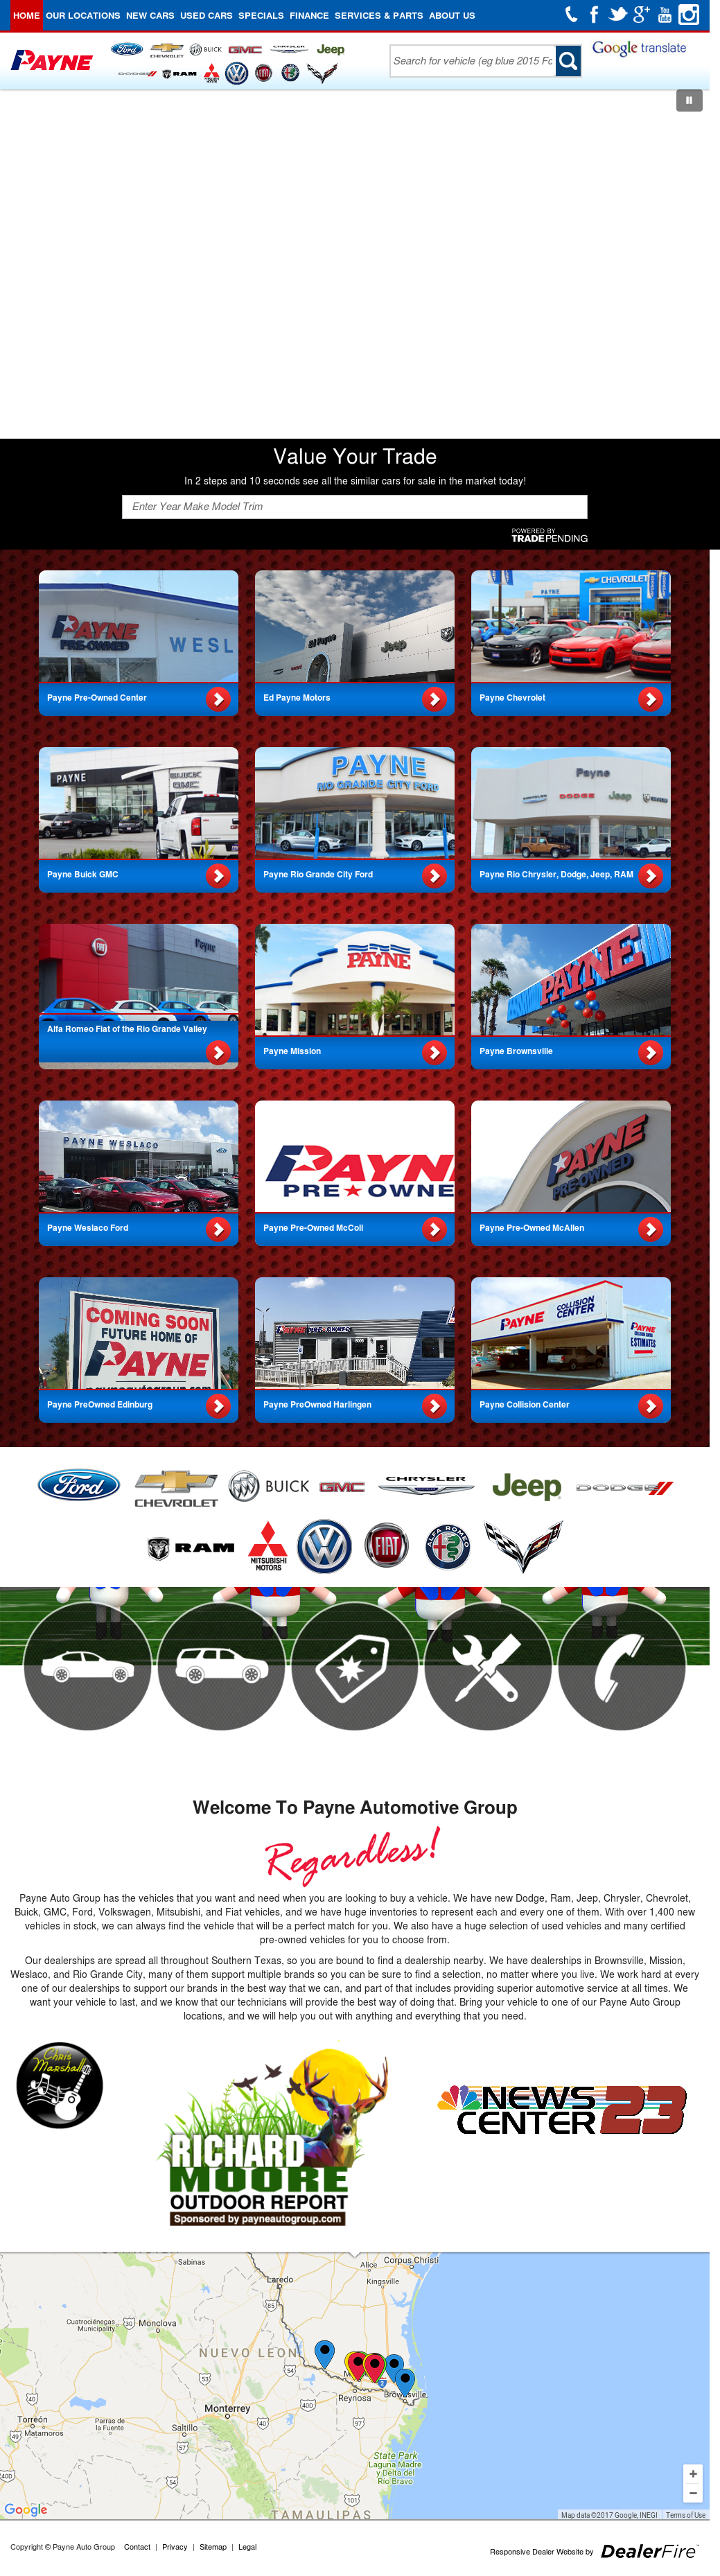 Payne Auto Group >> Payne Auto Group Competitors Revenue And Employees Owler